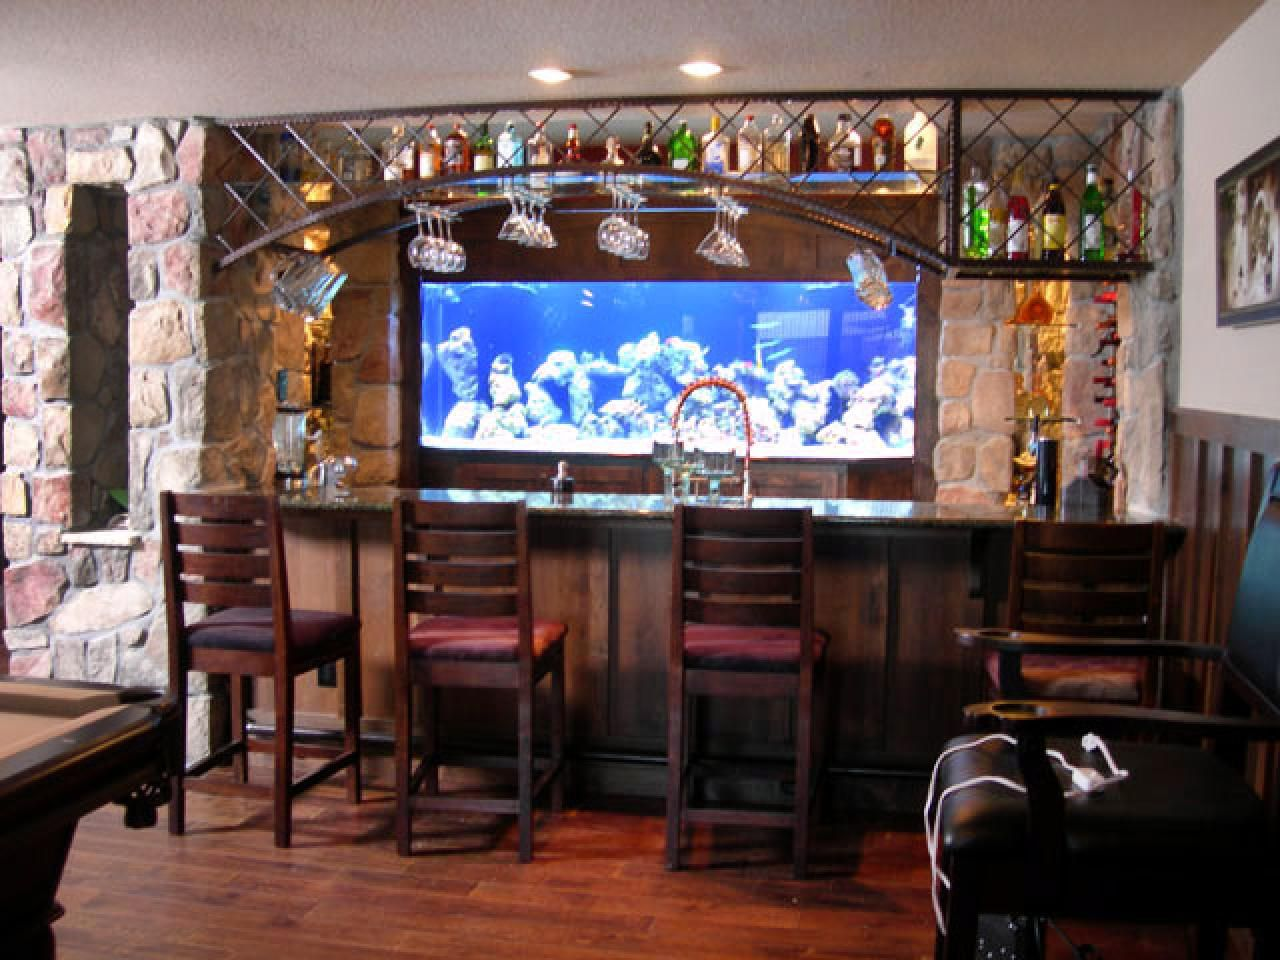 Home bar ideas 89 design options hgtv kitchen design Residential bar design ideas